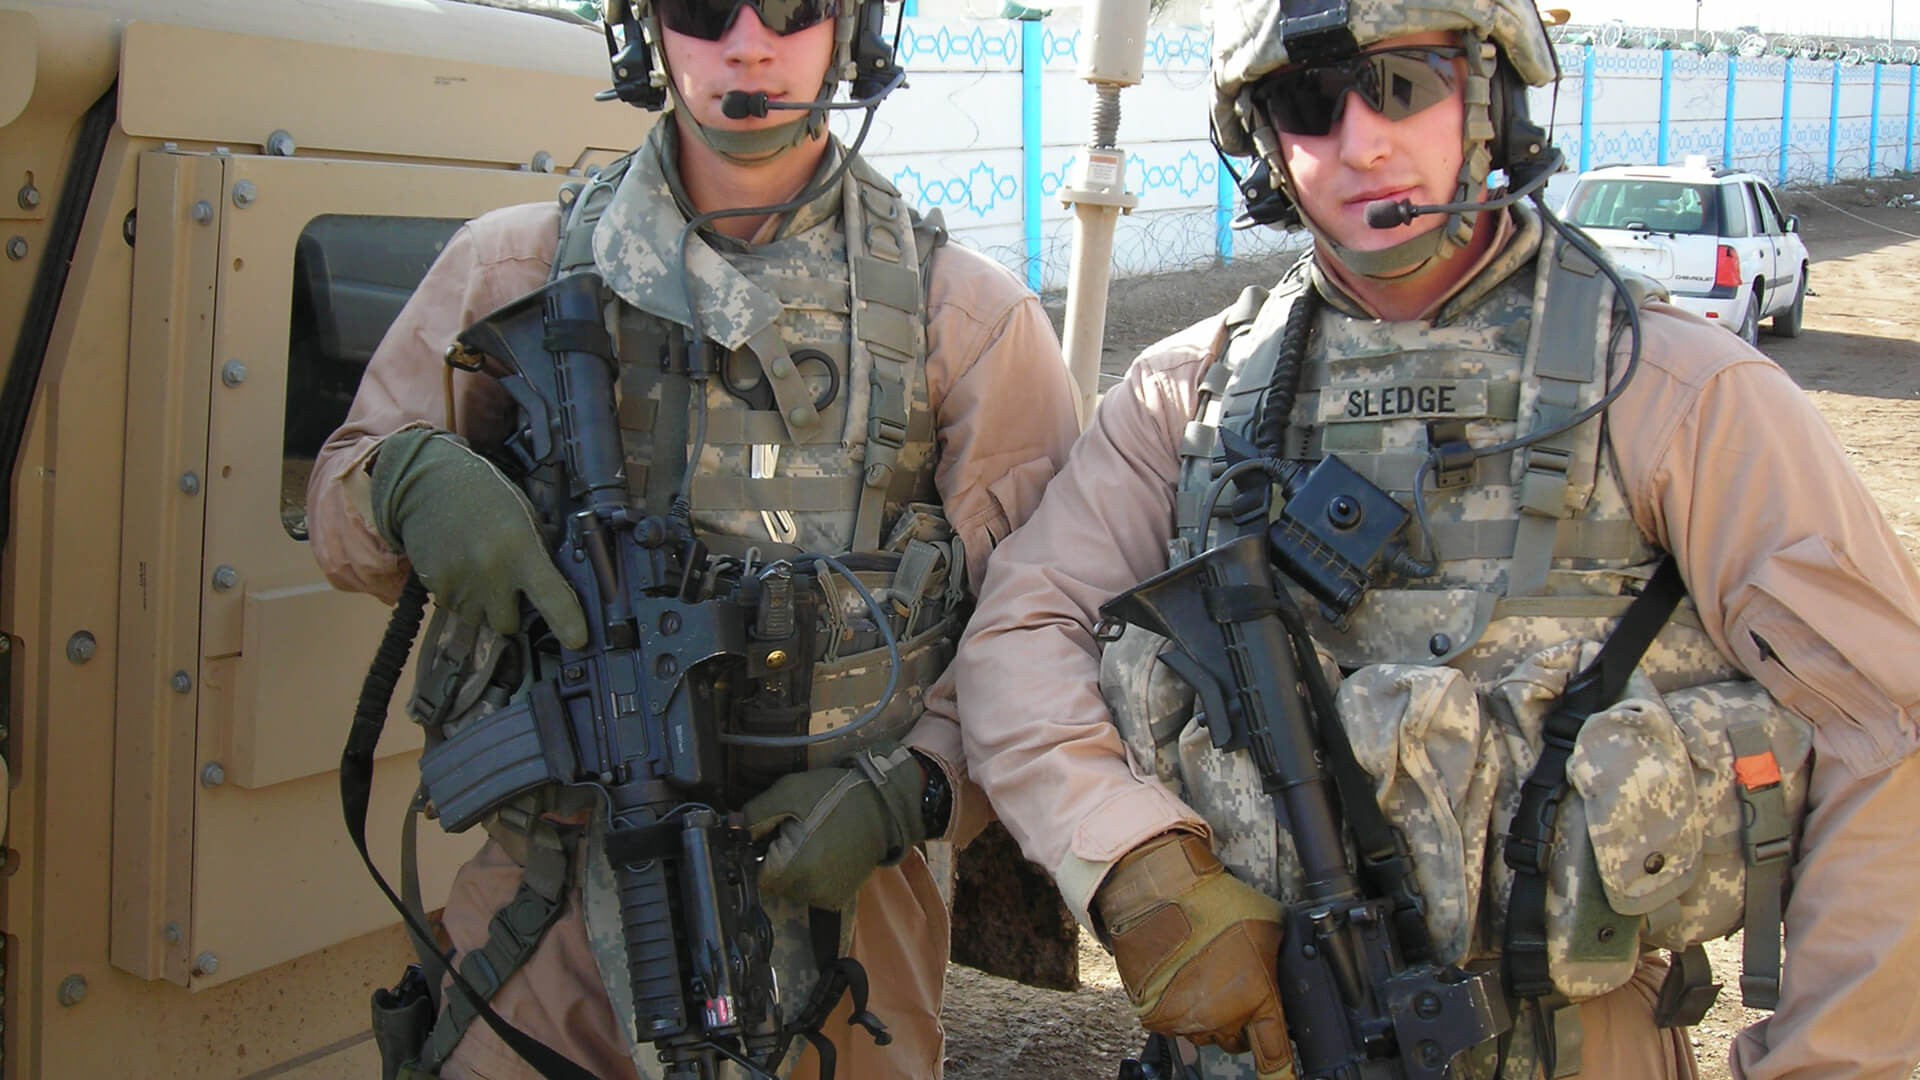 If Very People Were Training In Iraq >> Honest Thoughts From A Veteran About Gun Control And Mental Health